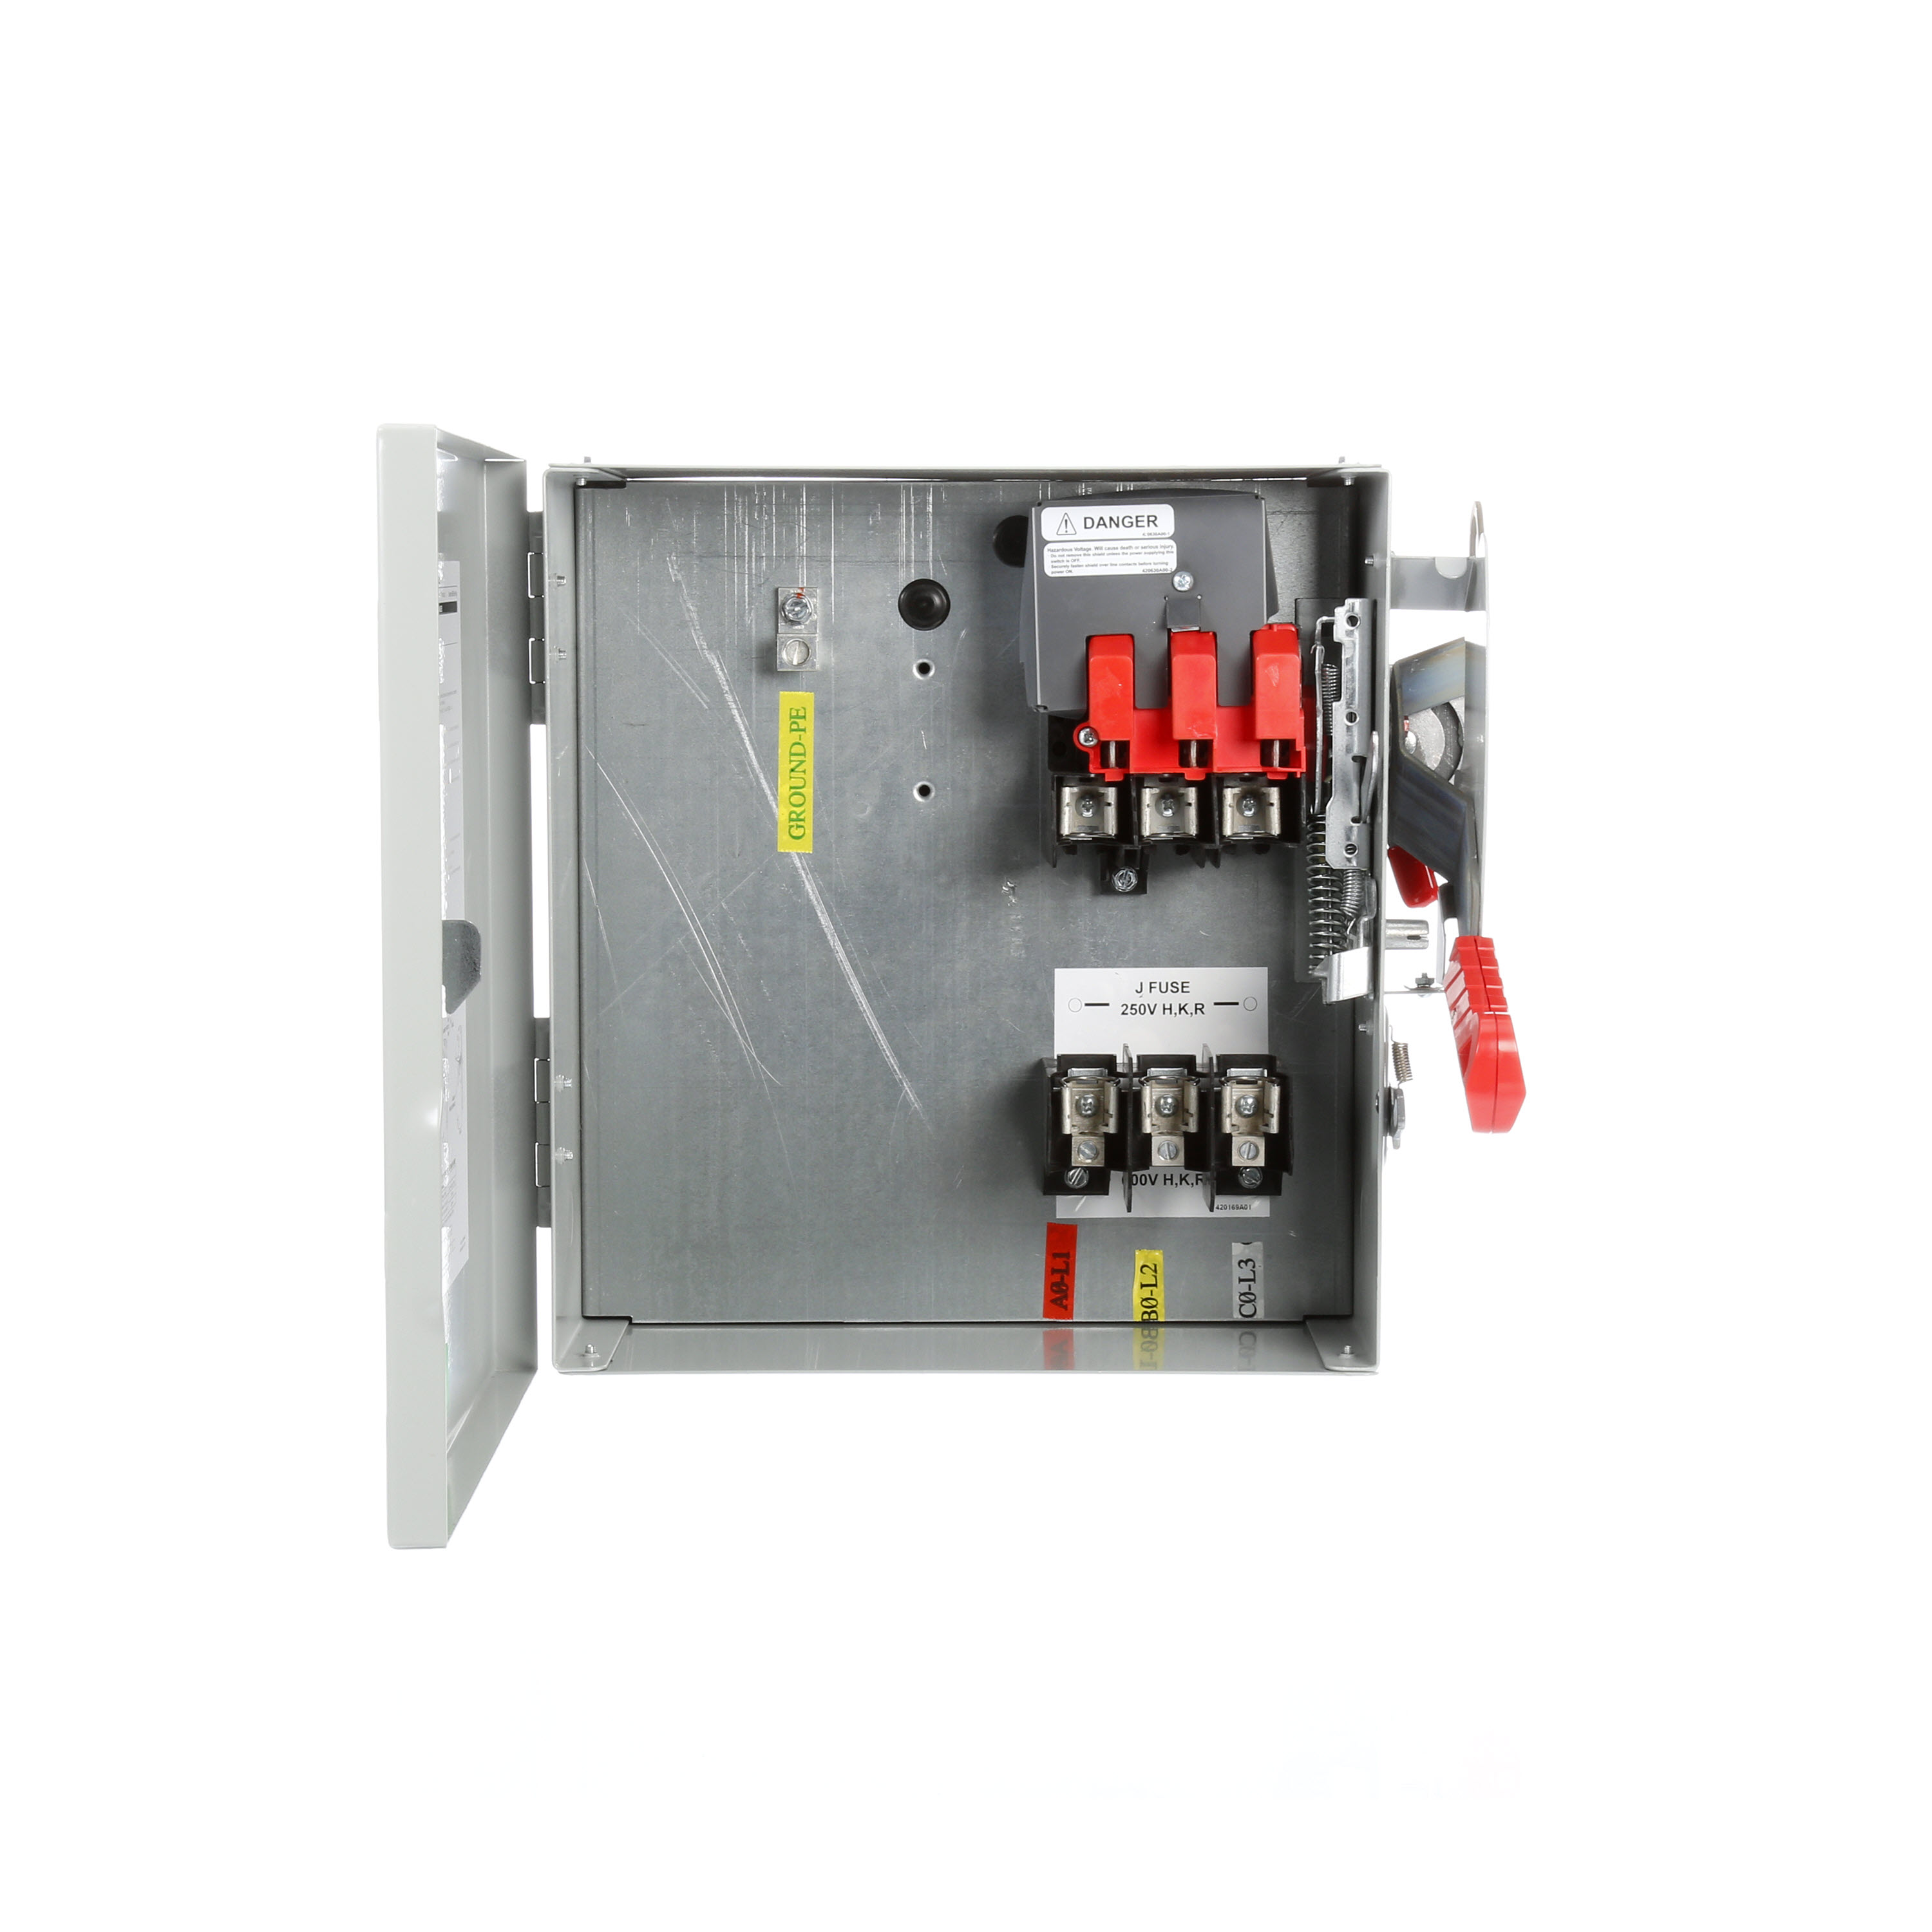 Products Stanion Wholesale Electric Southwire Circuit Breaker Finder With Gfci Check Analog Voltage Distribution Equipment Accessories